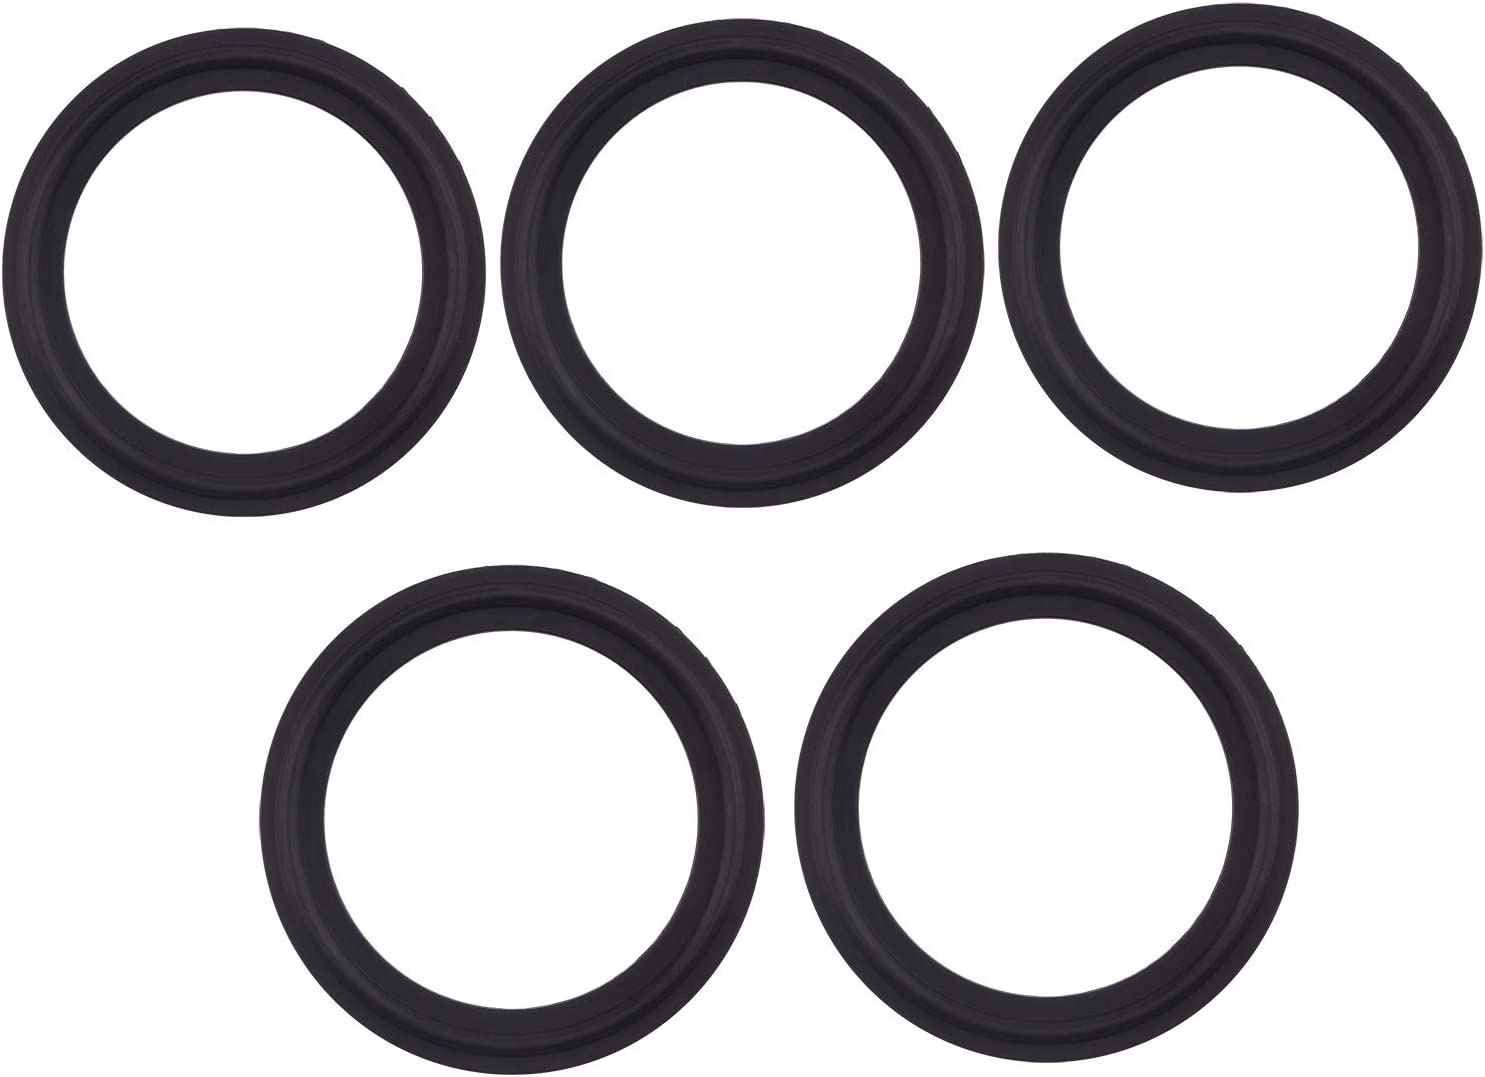 Viton Rubber Gasket Tri-clamp O-Ring Fits to Sanitary Tri-Clover Type Ferrule- 2 Inch (Pack of 5)